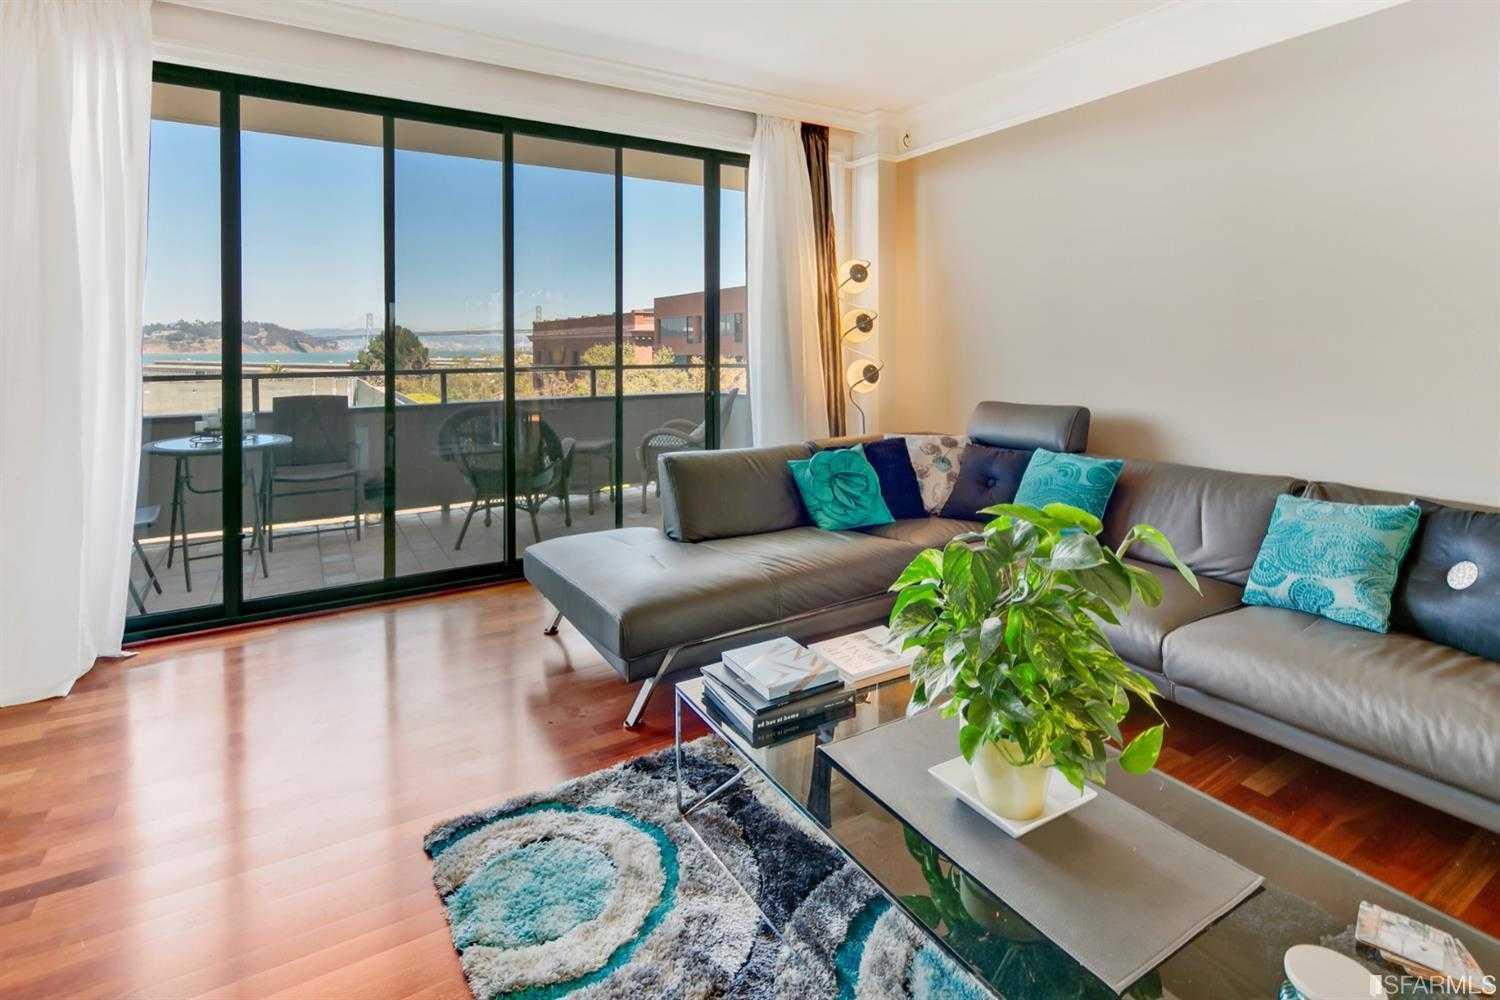 101 Lombard Street Unit 314E San Francisco, CA 94111